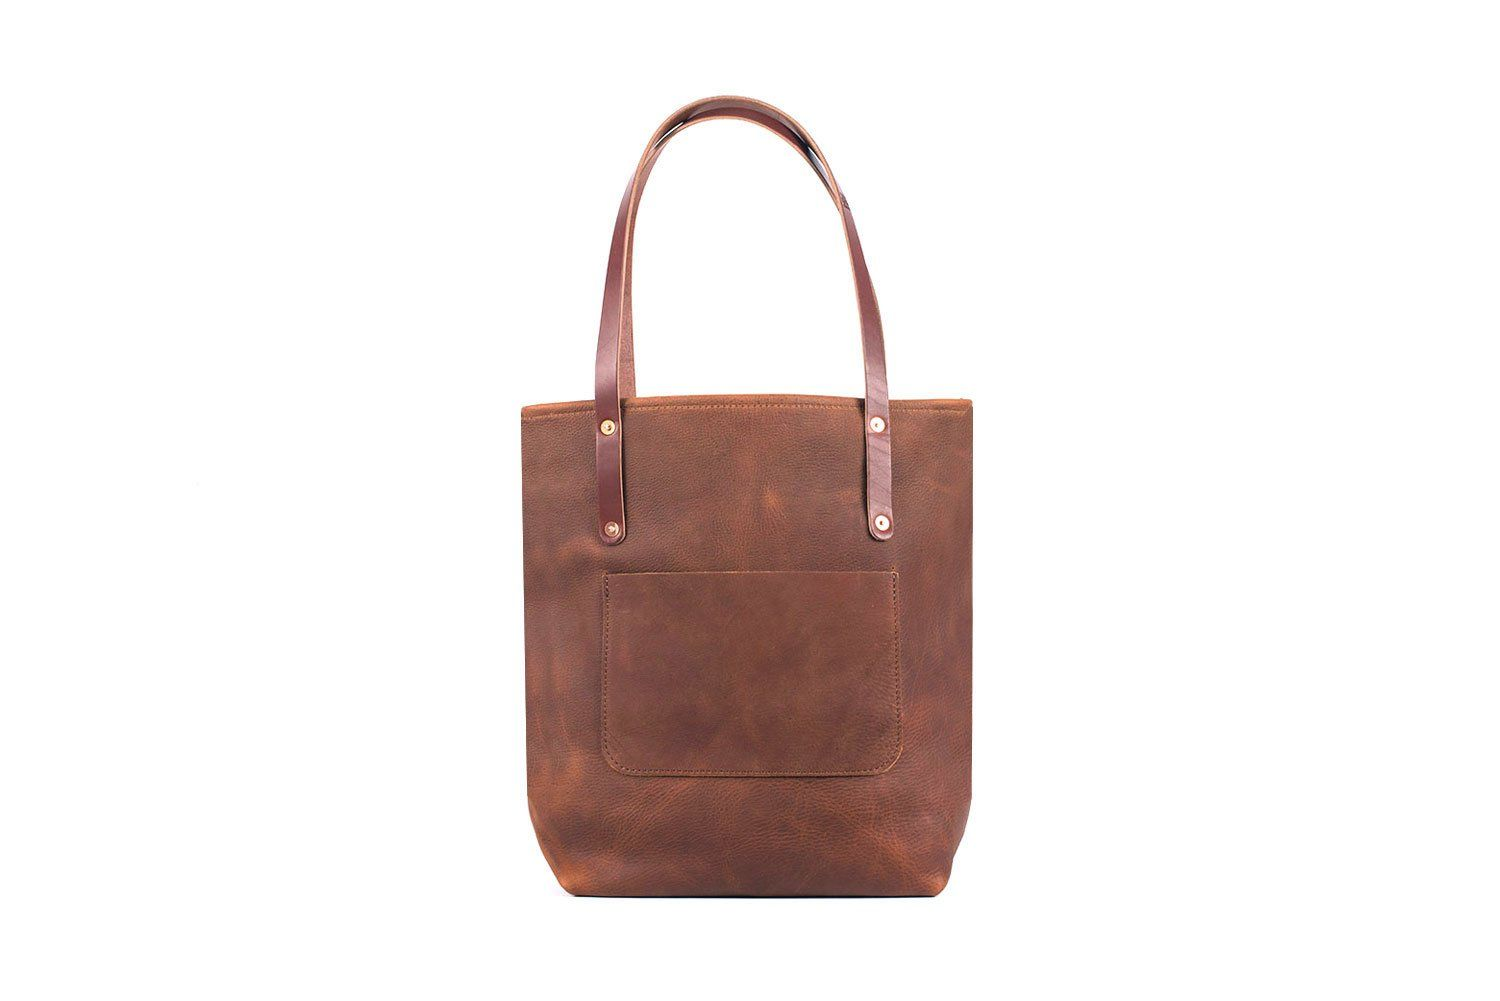 AVERY LEATHER TOTE BAG WITH ZIPPER - SLIM LARGE DELUXE